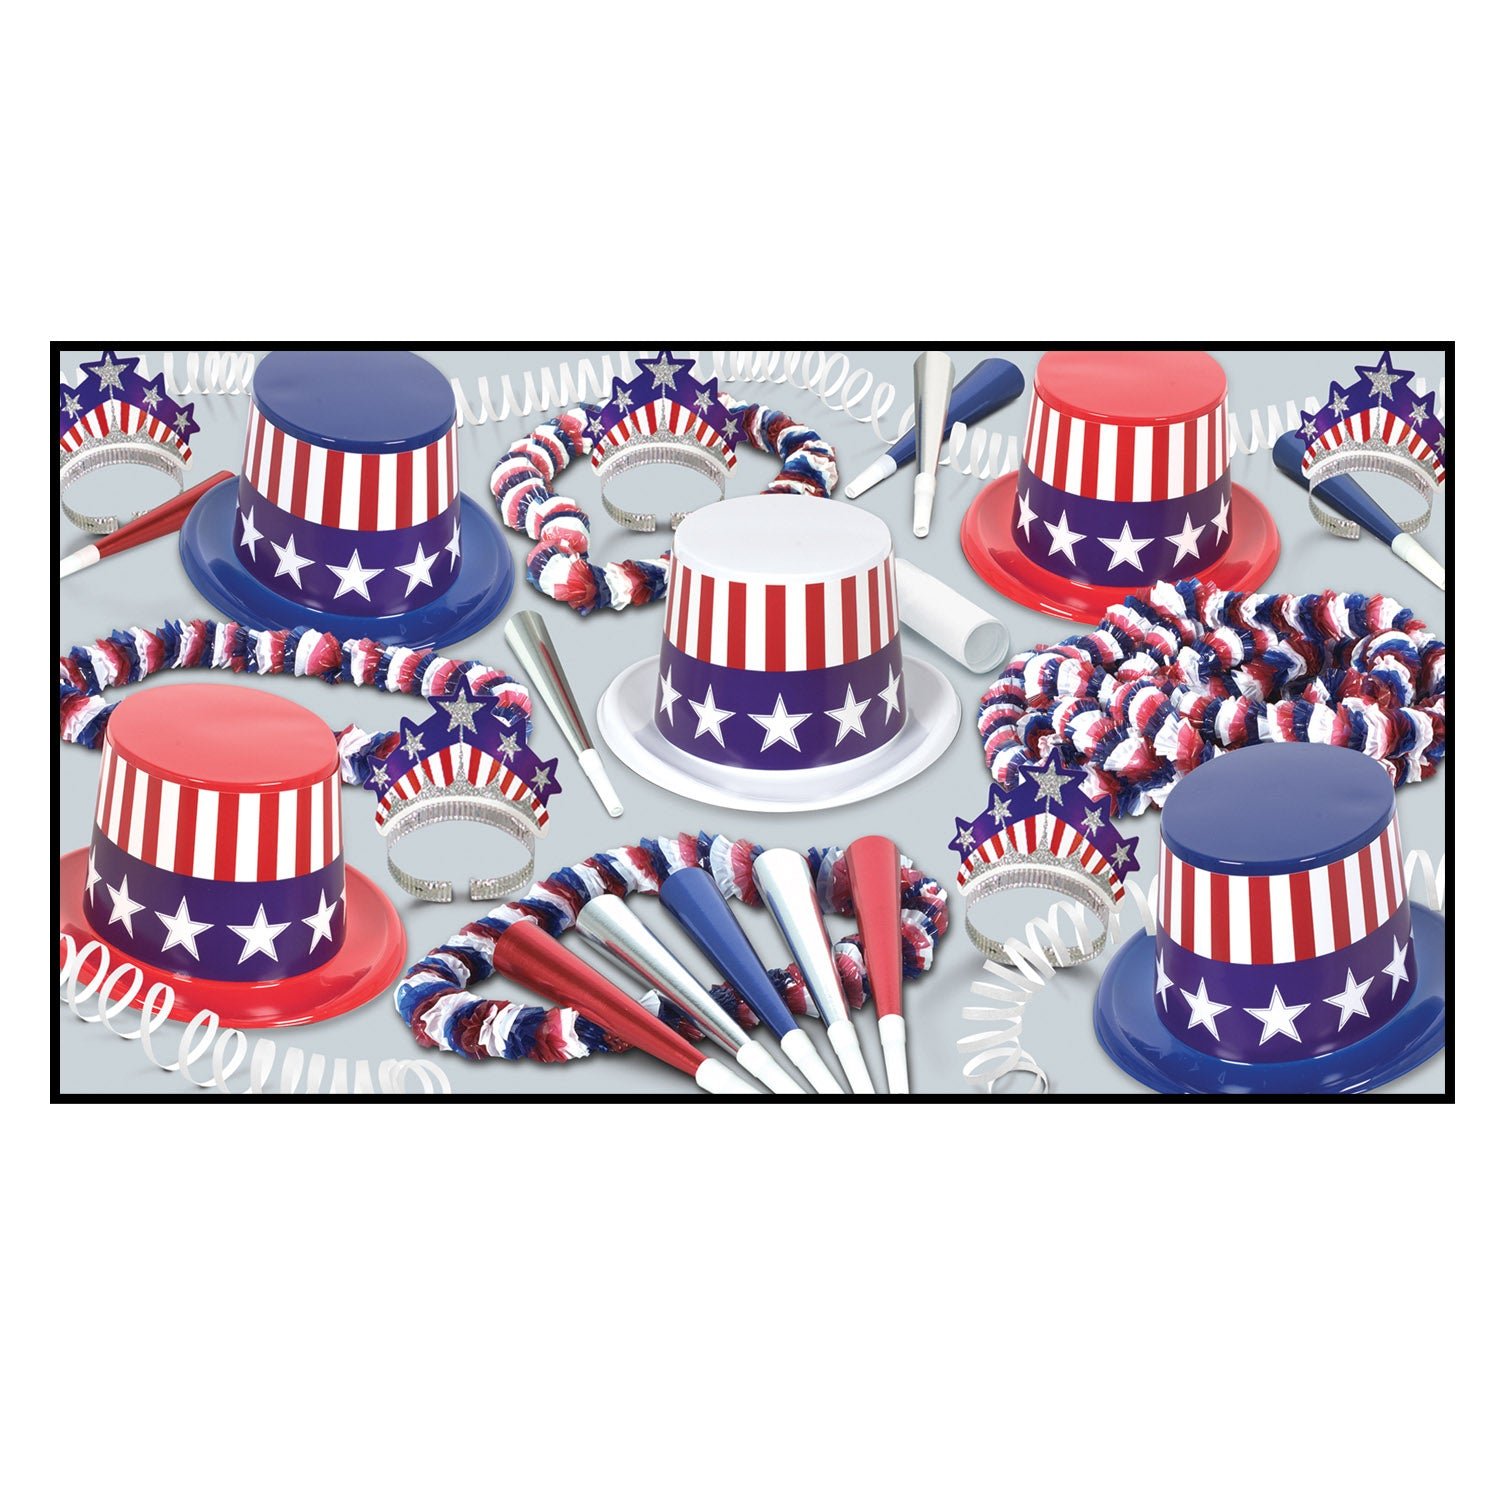 Spirit Of America Assortment for 50 people by Beistle - Patriotic Theme Decorations